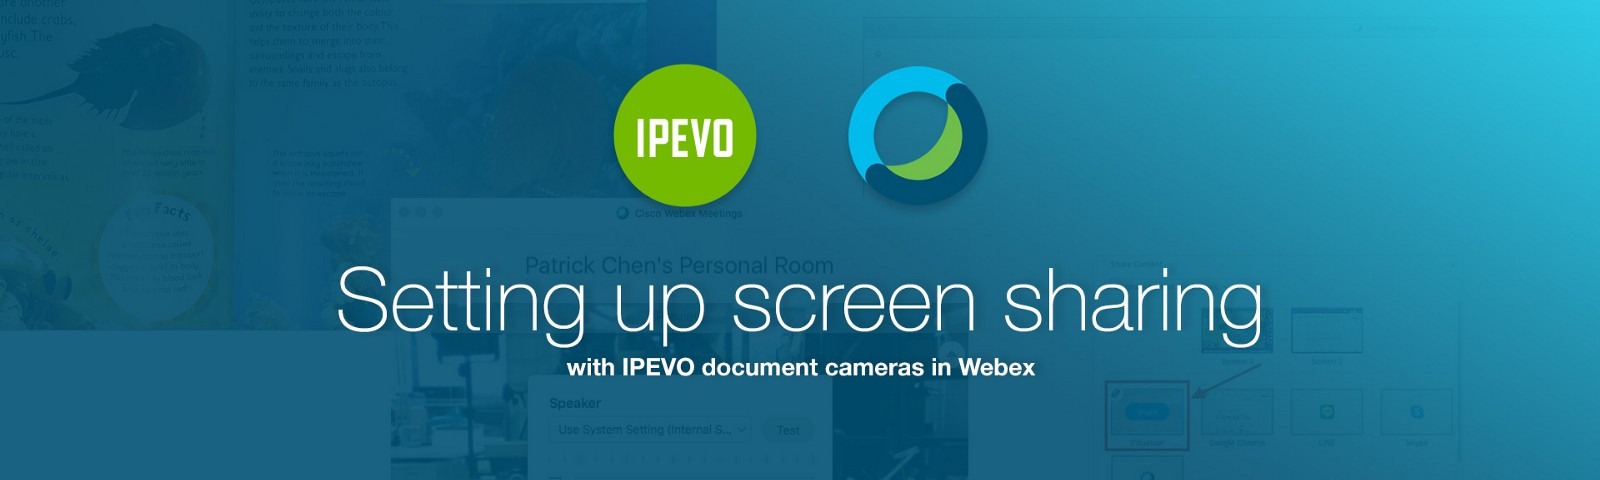 Setting up screen sharing with IPEVO document cameras in Webex